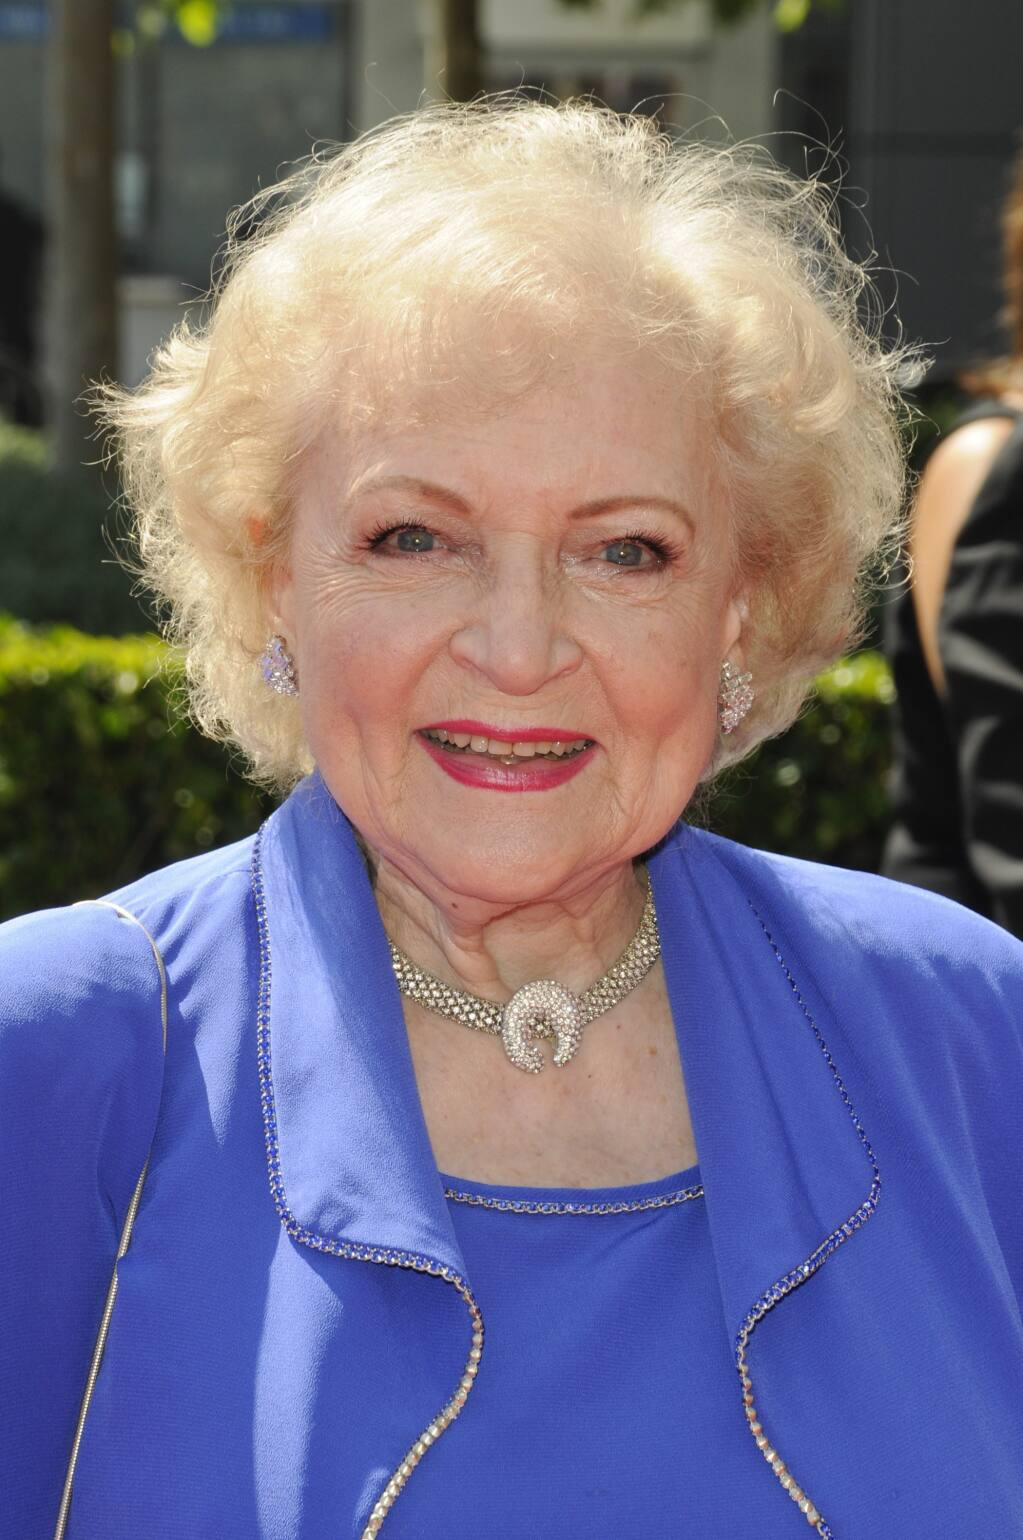 Betty White, shown here in 2009, celebrated her 99th birthday Jan. 17 with a hot dog and fries.